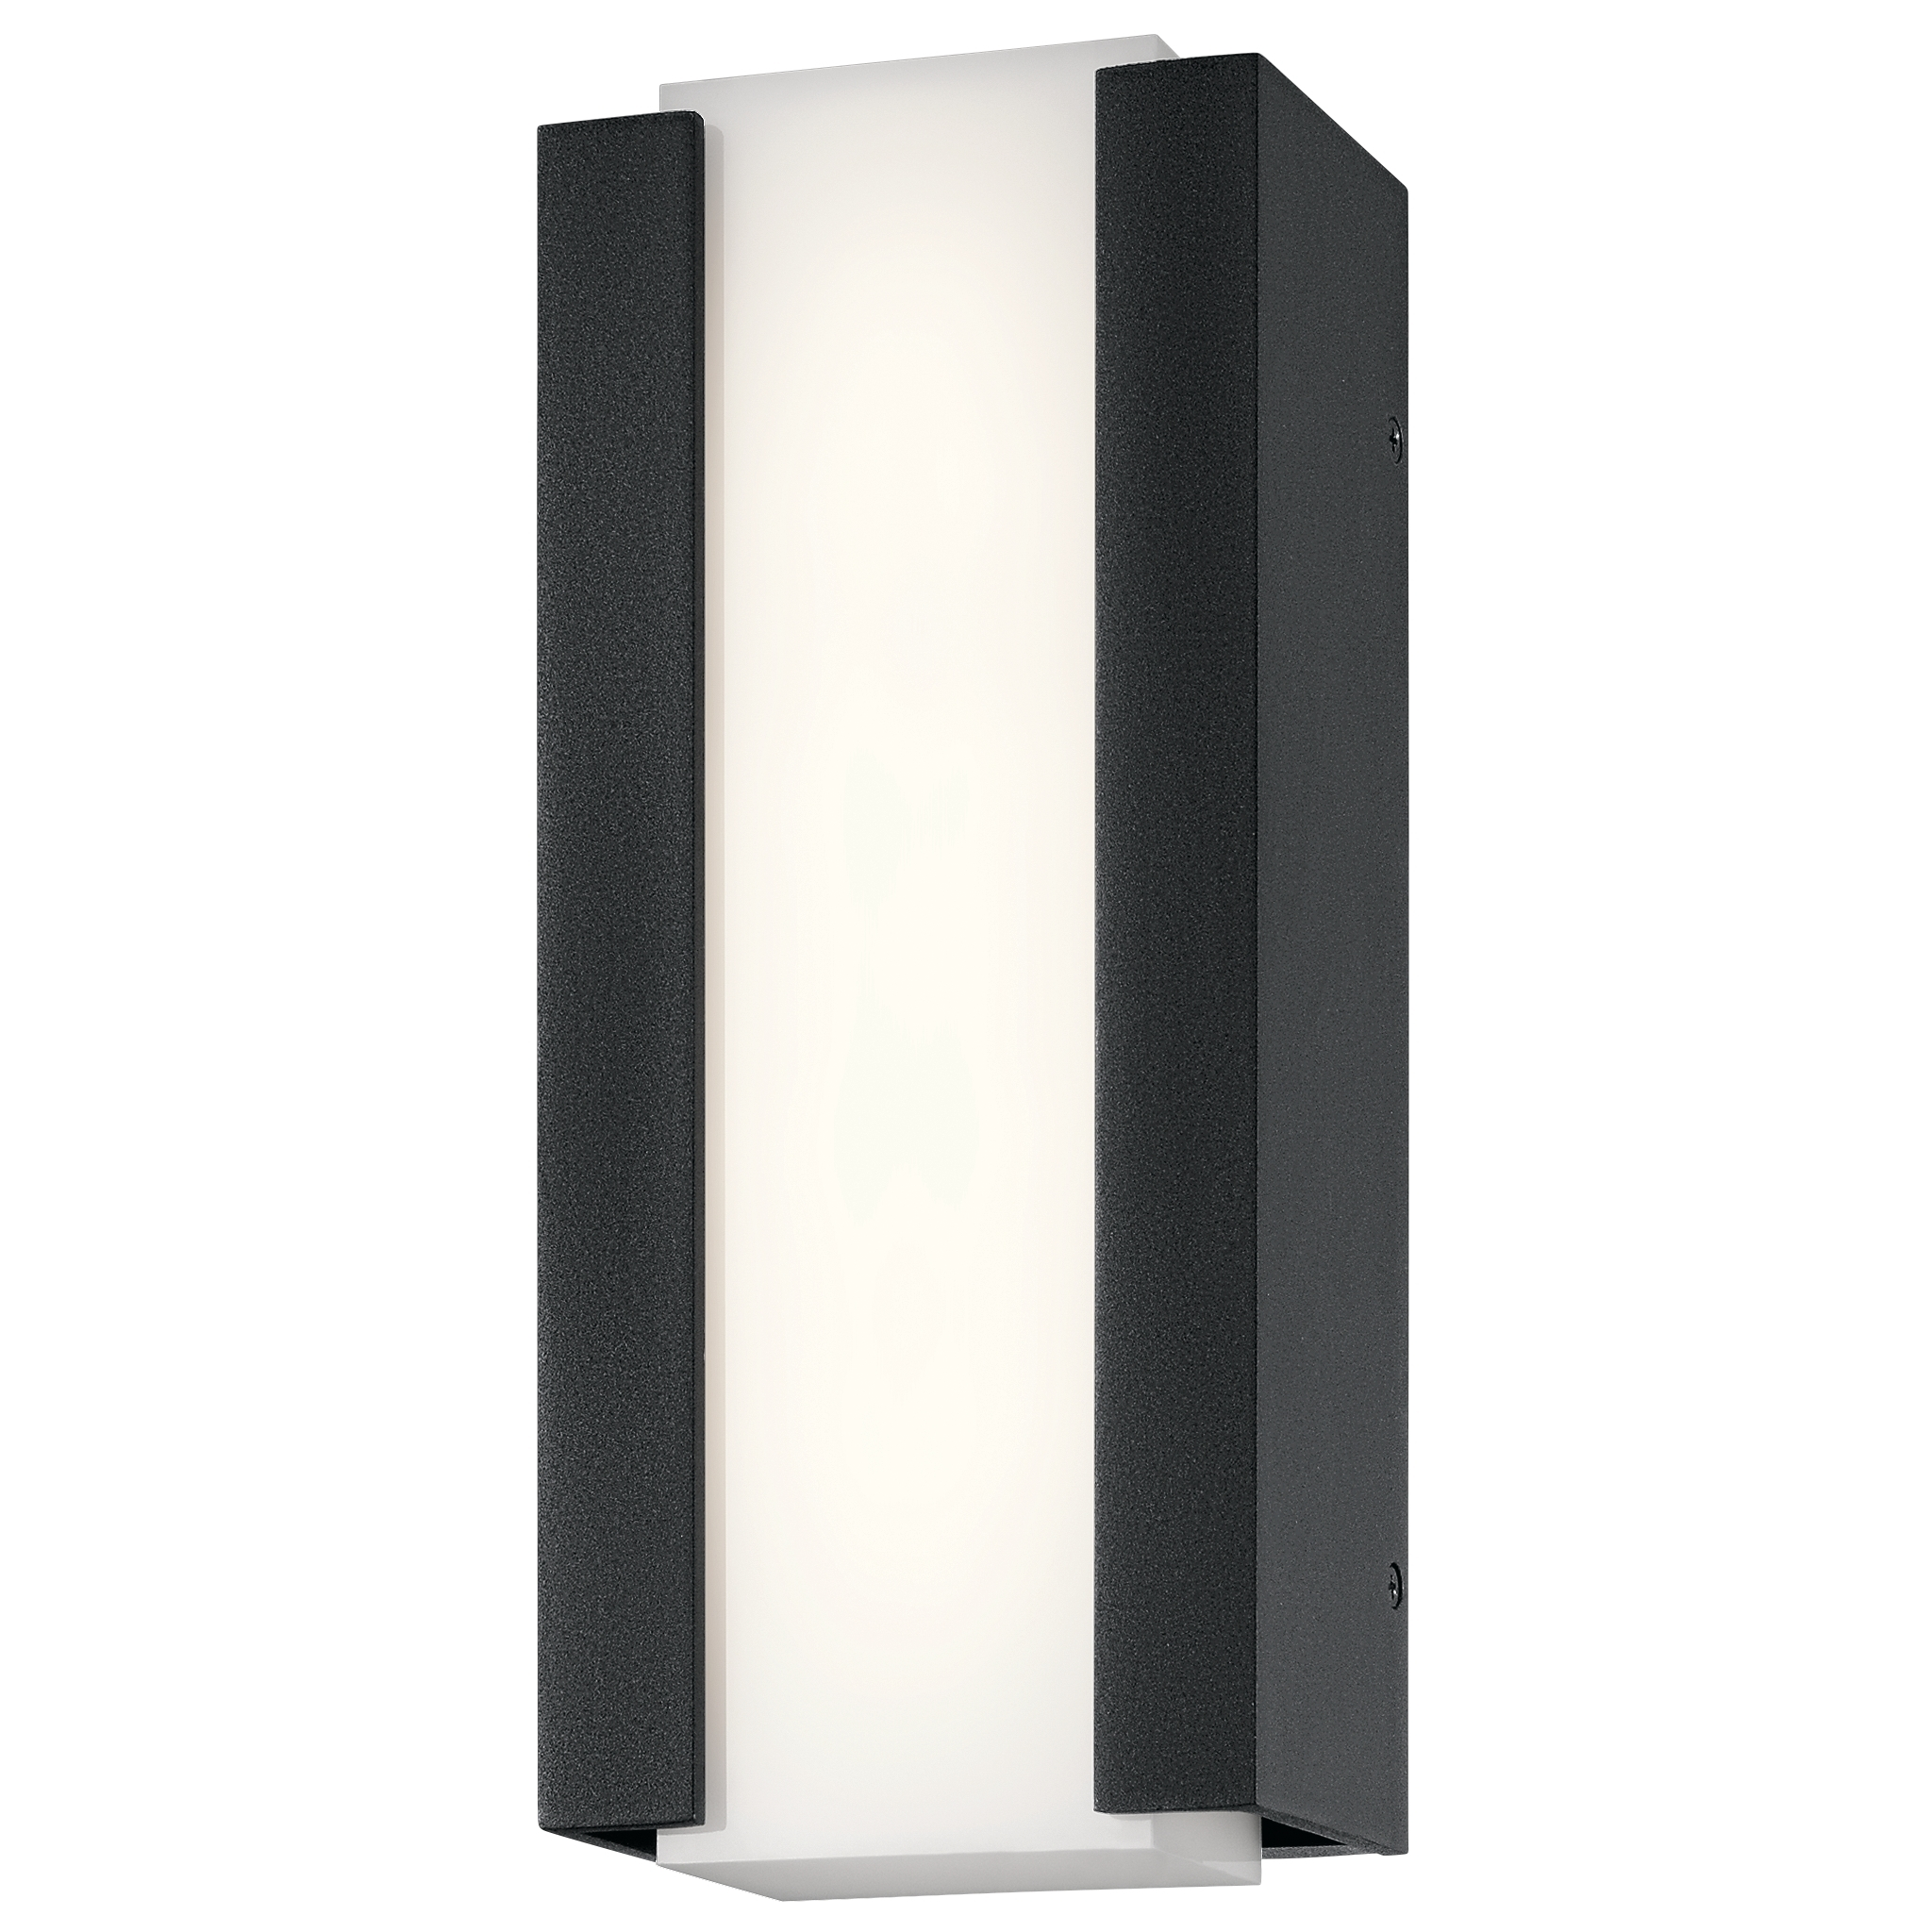 Kichler Lighting 49798Bktled Outdoor Wall Lighting – Ashton Intended For Most Recent Outdoor Wall Led Kichler Lighting (View 15 of 20)